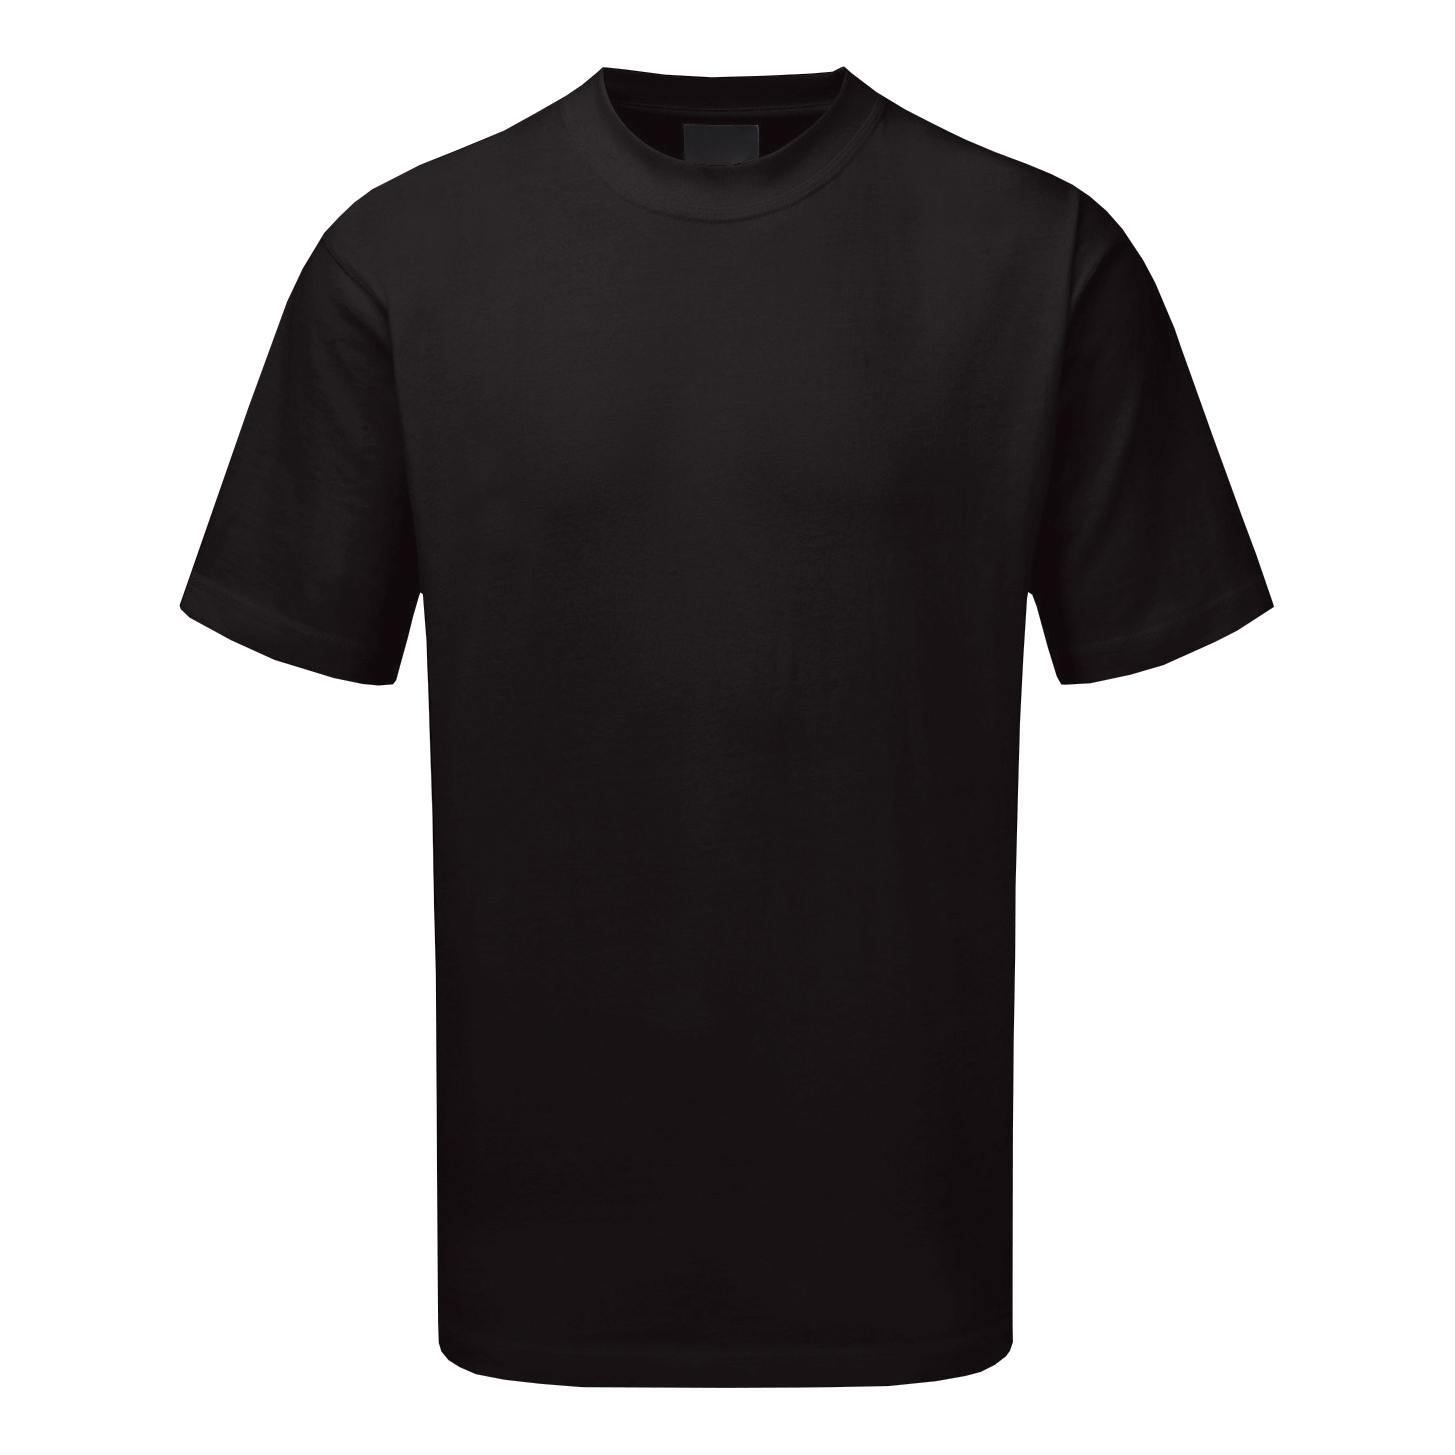 Premium T-Shirt Polycotton Triple Stitched 2XL Black Ref CLCTSHWBLXXL *Up to 3 Day Leadtime*